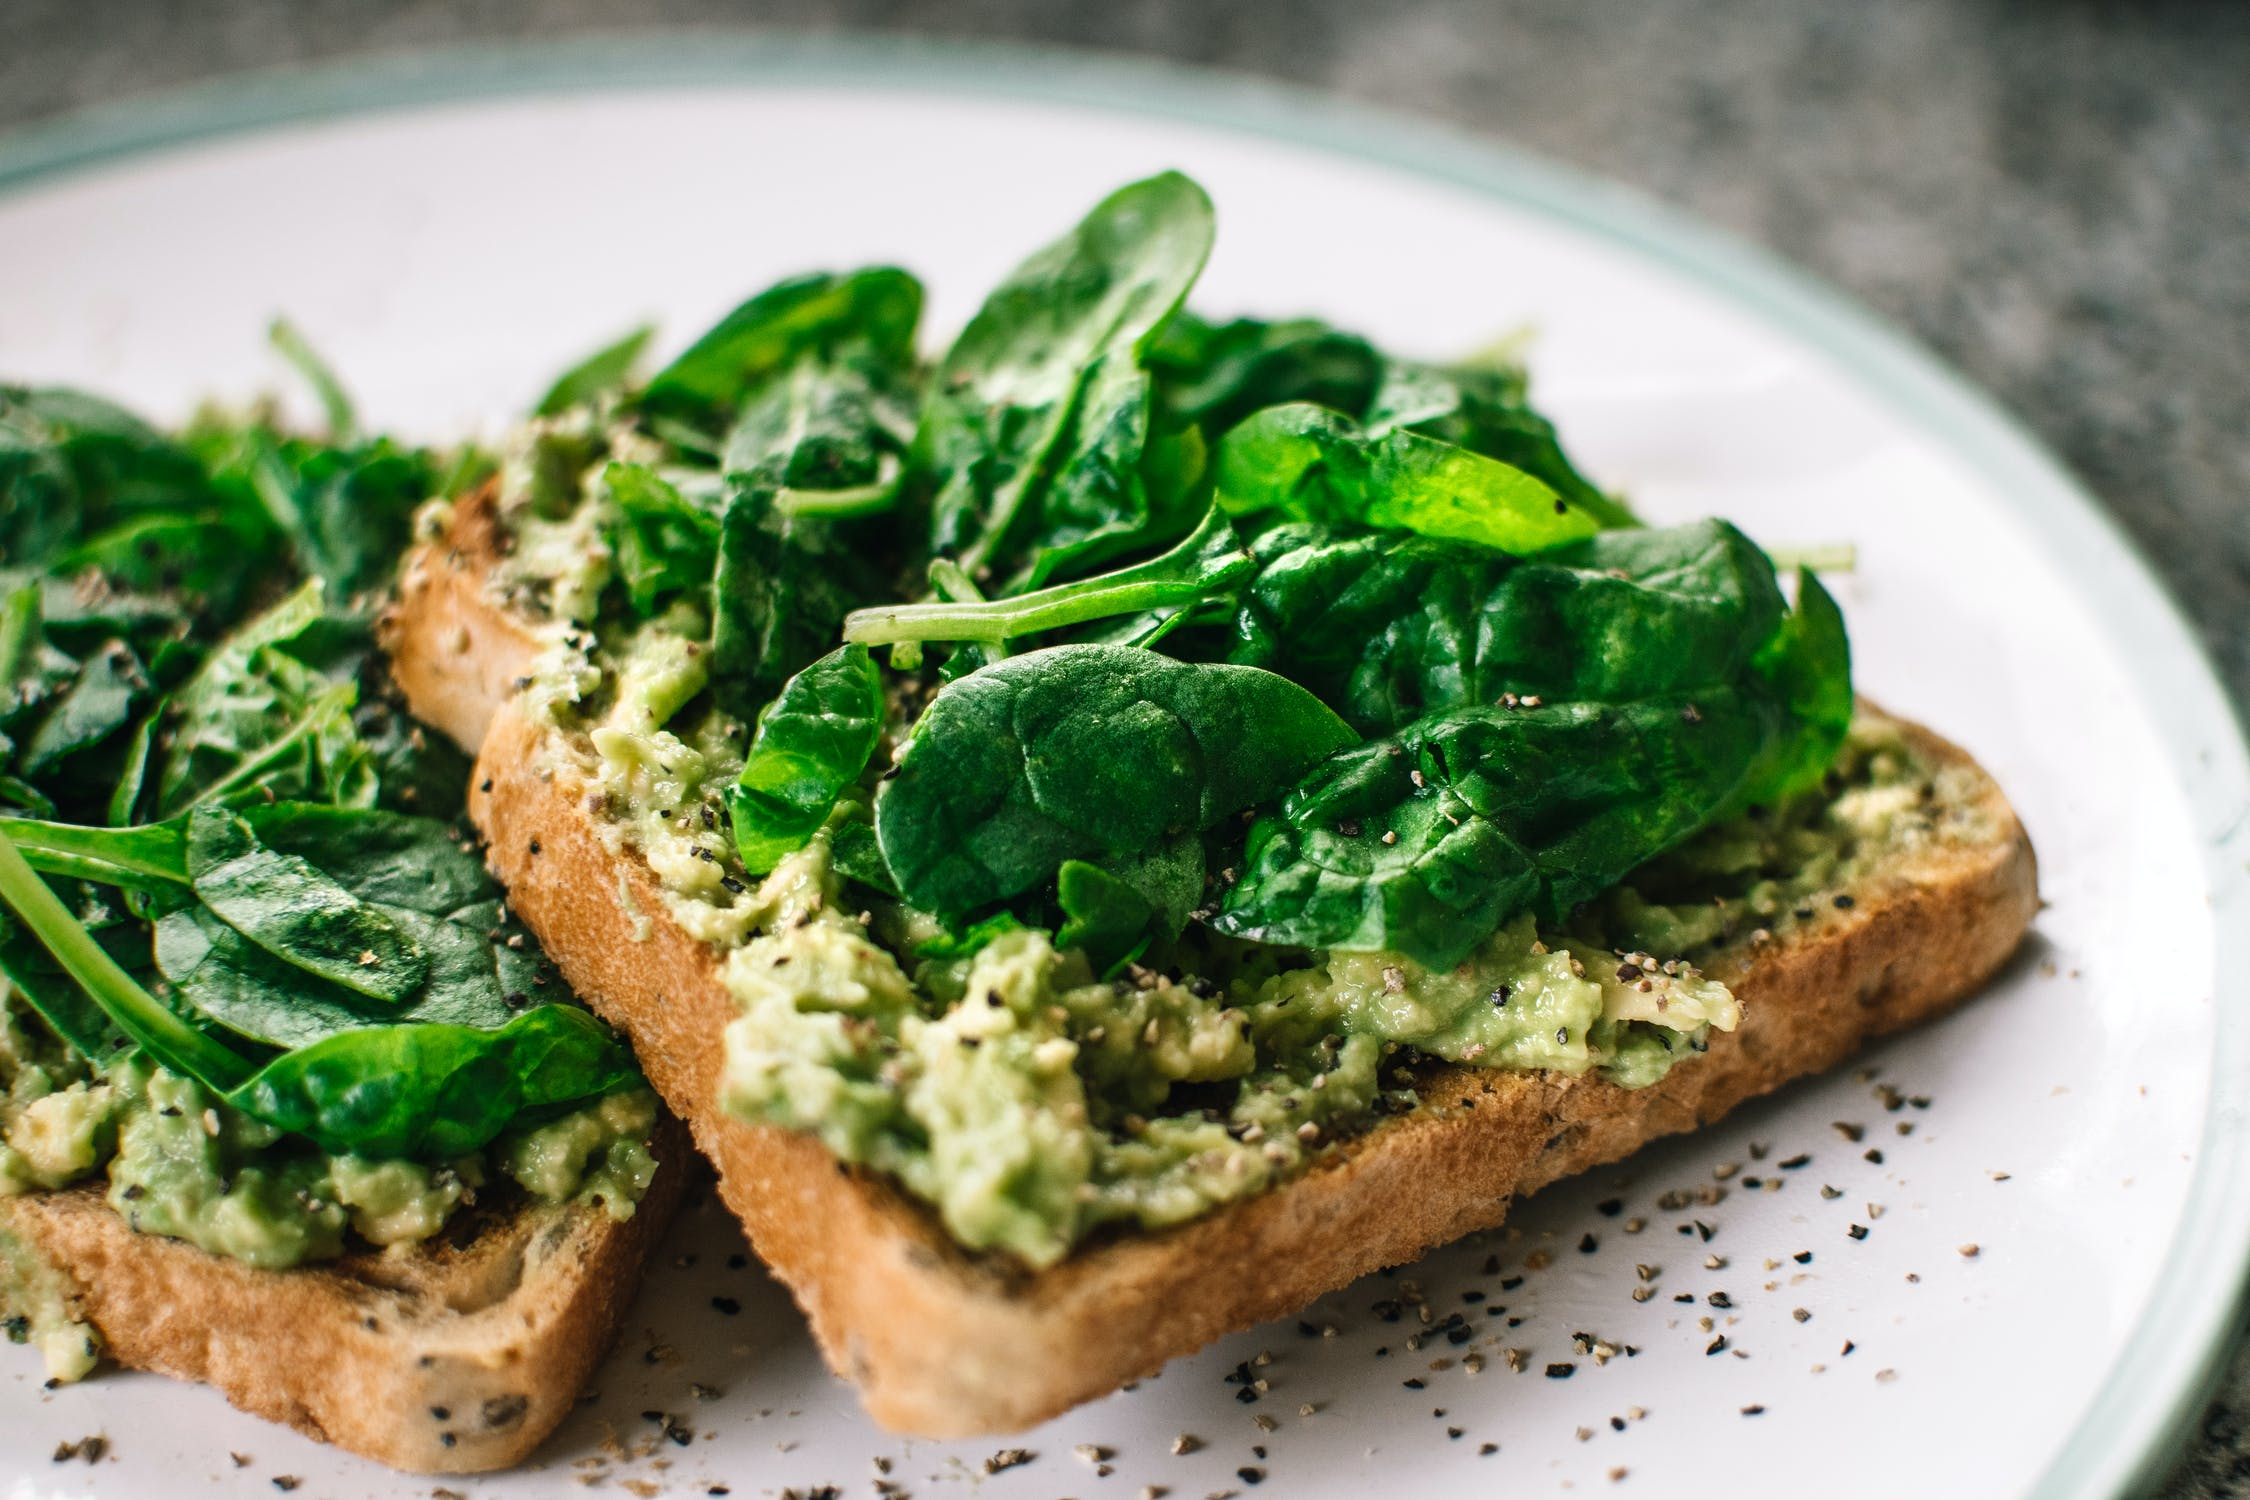 Avocado Toast with spinach on top